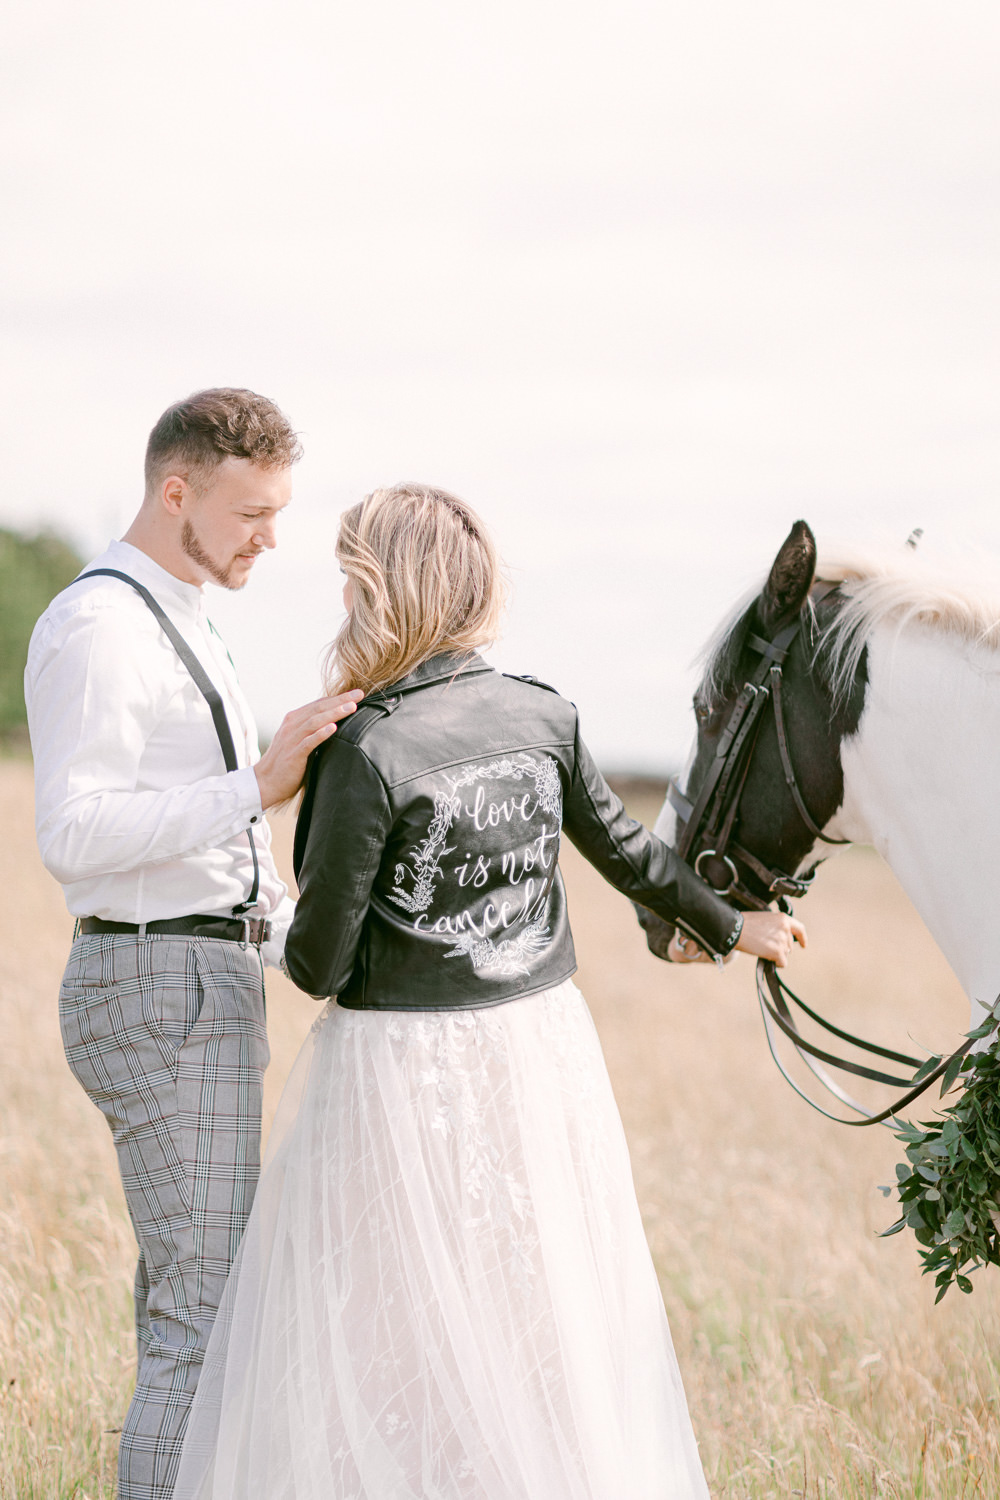 Leather Jacket Painted Bride Bridal Family Elopement Ideas Sophie May Photo